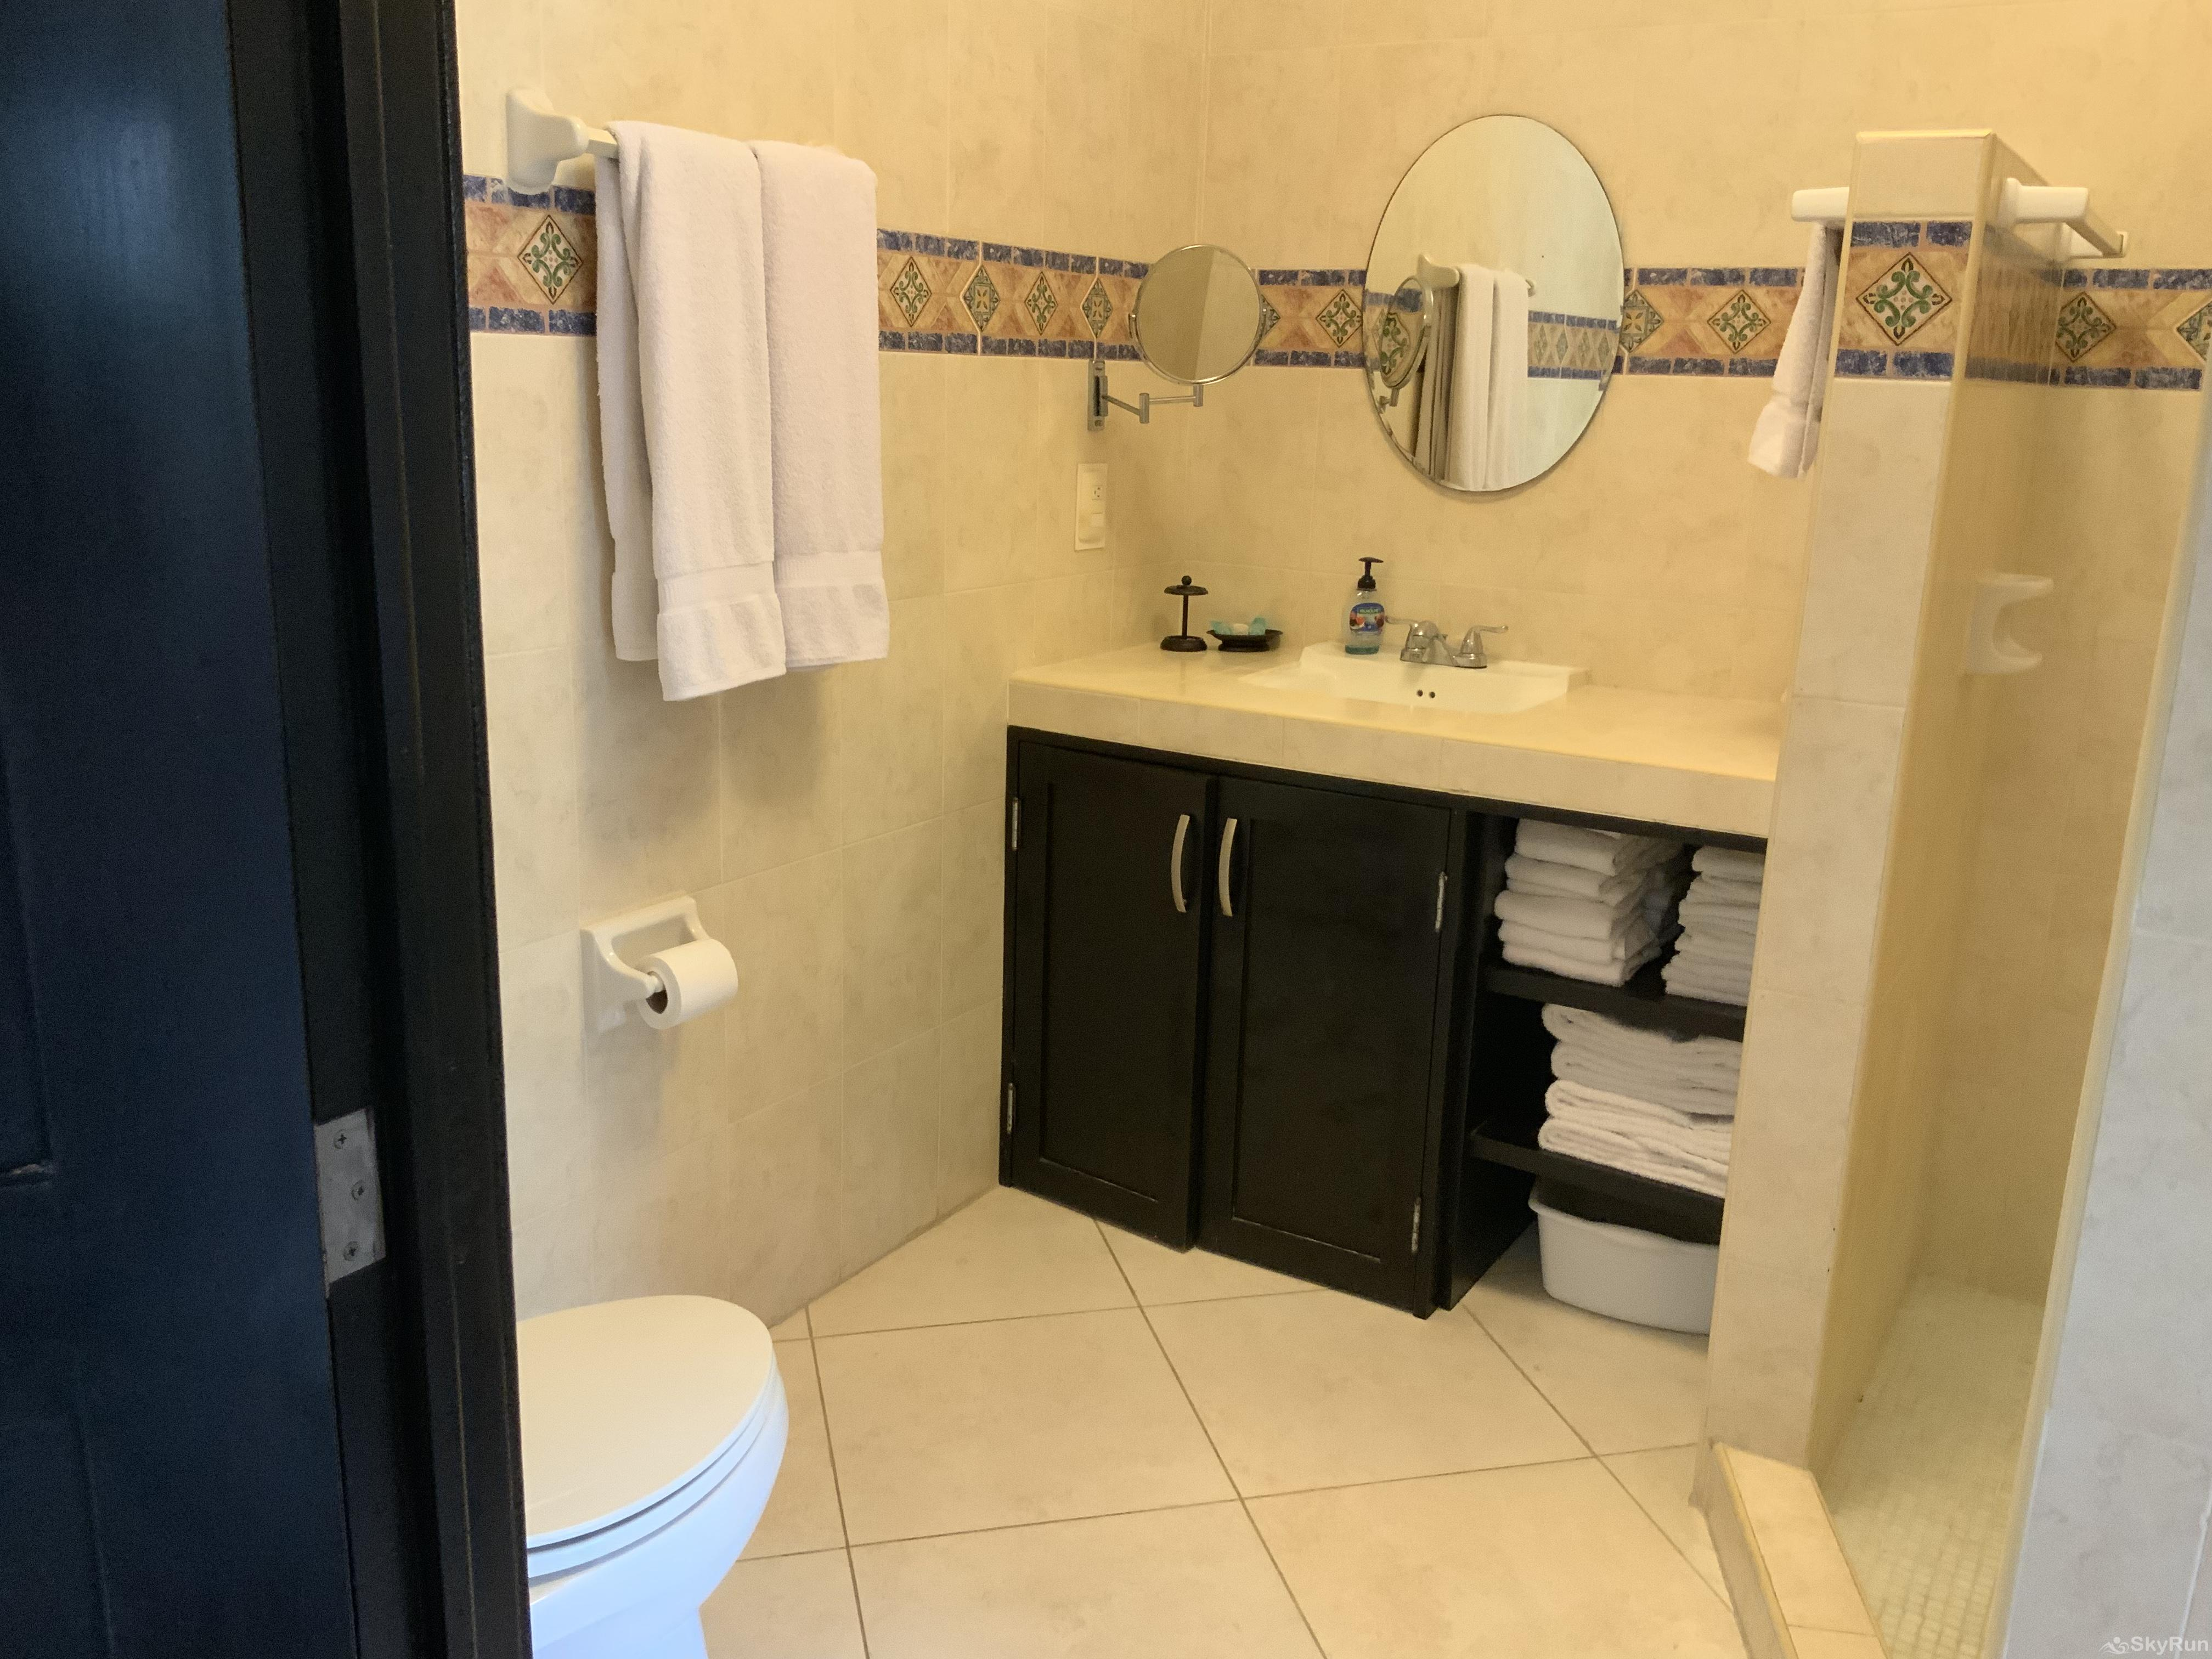 Beach Condo Casa de Canciones Rosa Blanca Playacar 2bdr Outdoor Pool Bathroom in Playacar condo